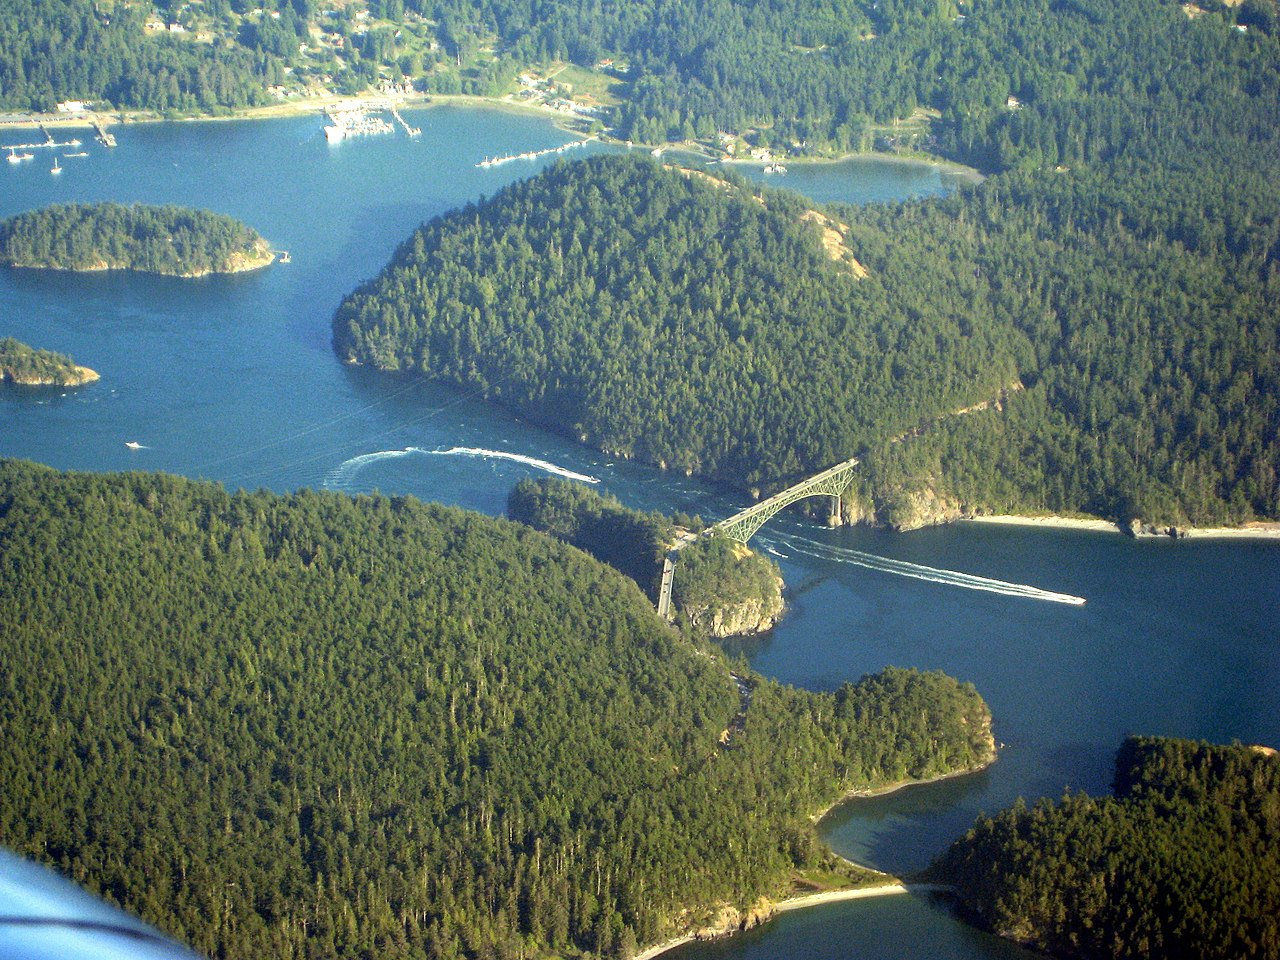 Deception Pass State Park encompasses parts of Fidalgo and Whidbey Islands and is connected by the bridge of the same name.